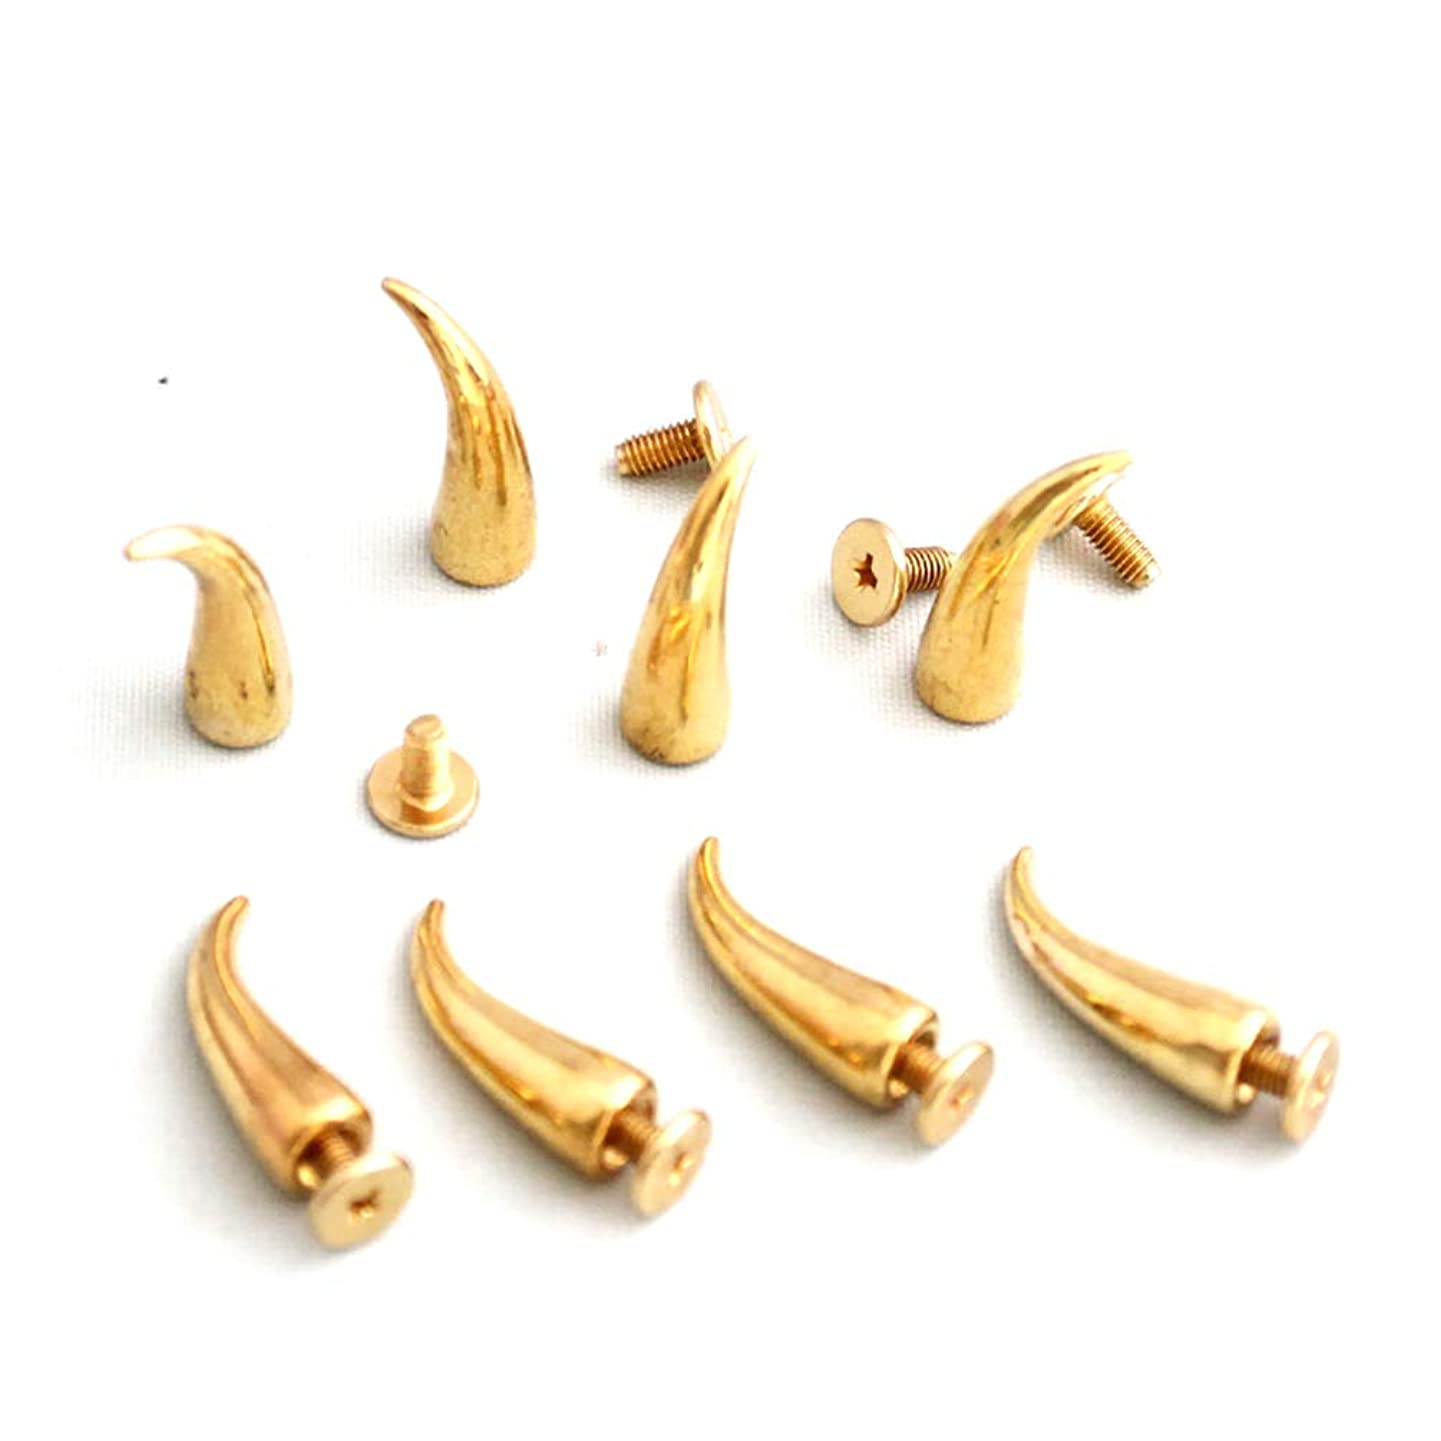 50Set 22mm X 7mm Copper Gold Tone Pepper Cat Paw Claw Shape Horn Spikes Screwback Pyramid Studs DIY Goth Punk Spot Rivets Metal Stud for Leather Cloth Craft Bullet Spike Bag Belt Clothes 1.02.2